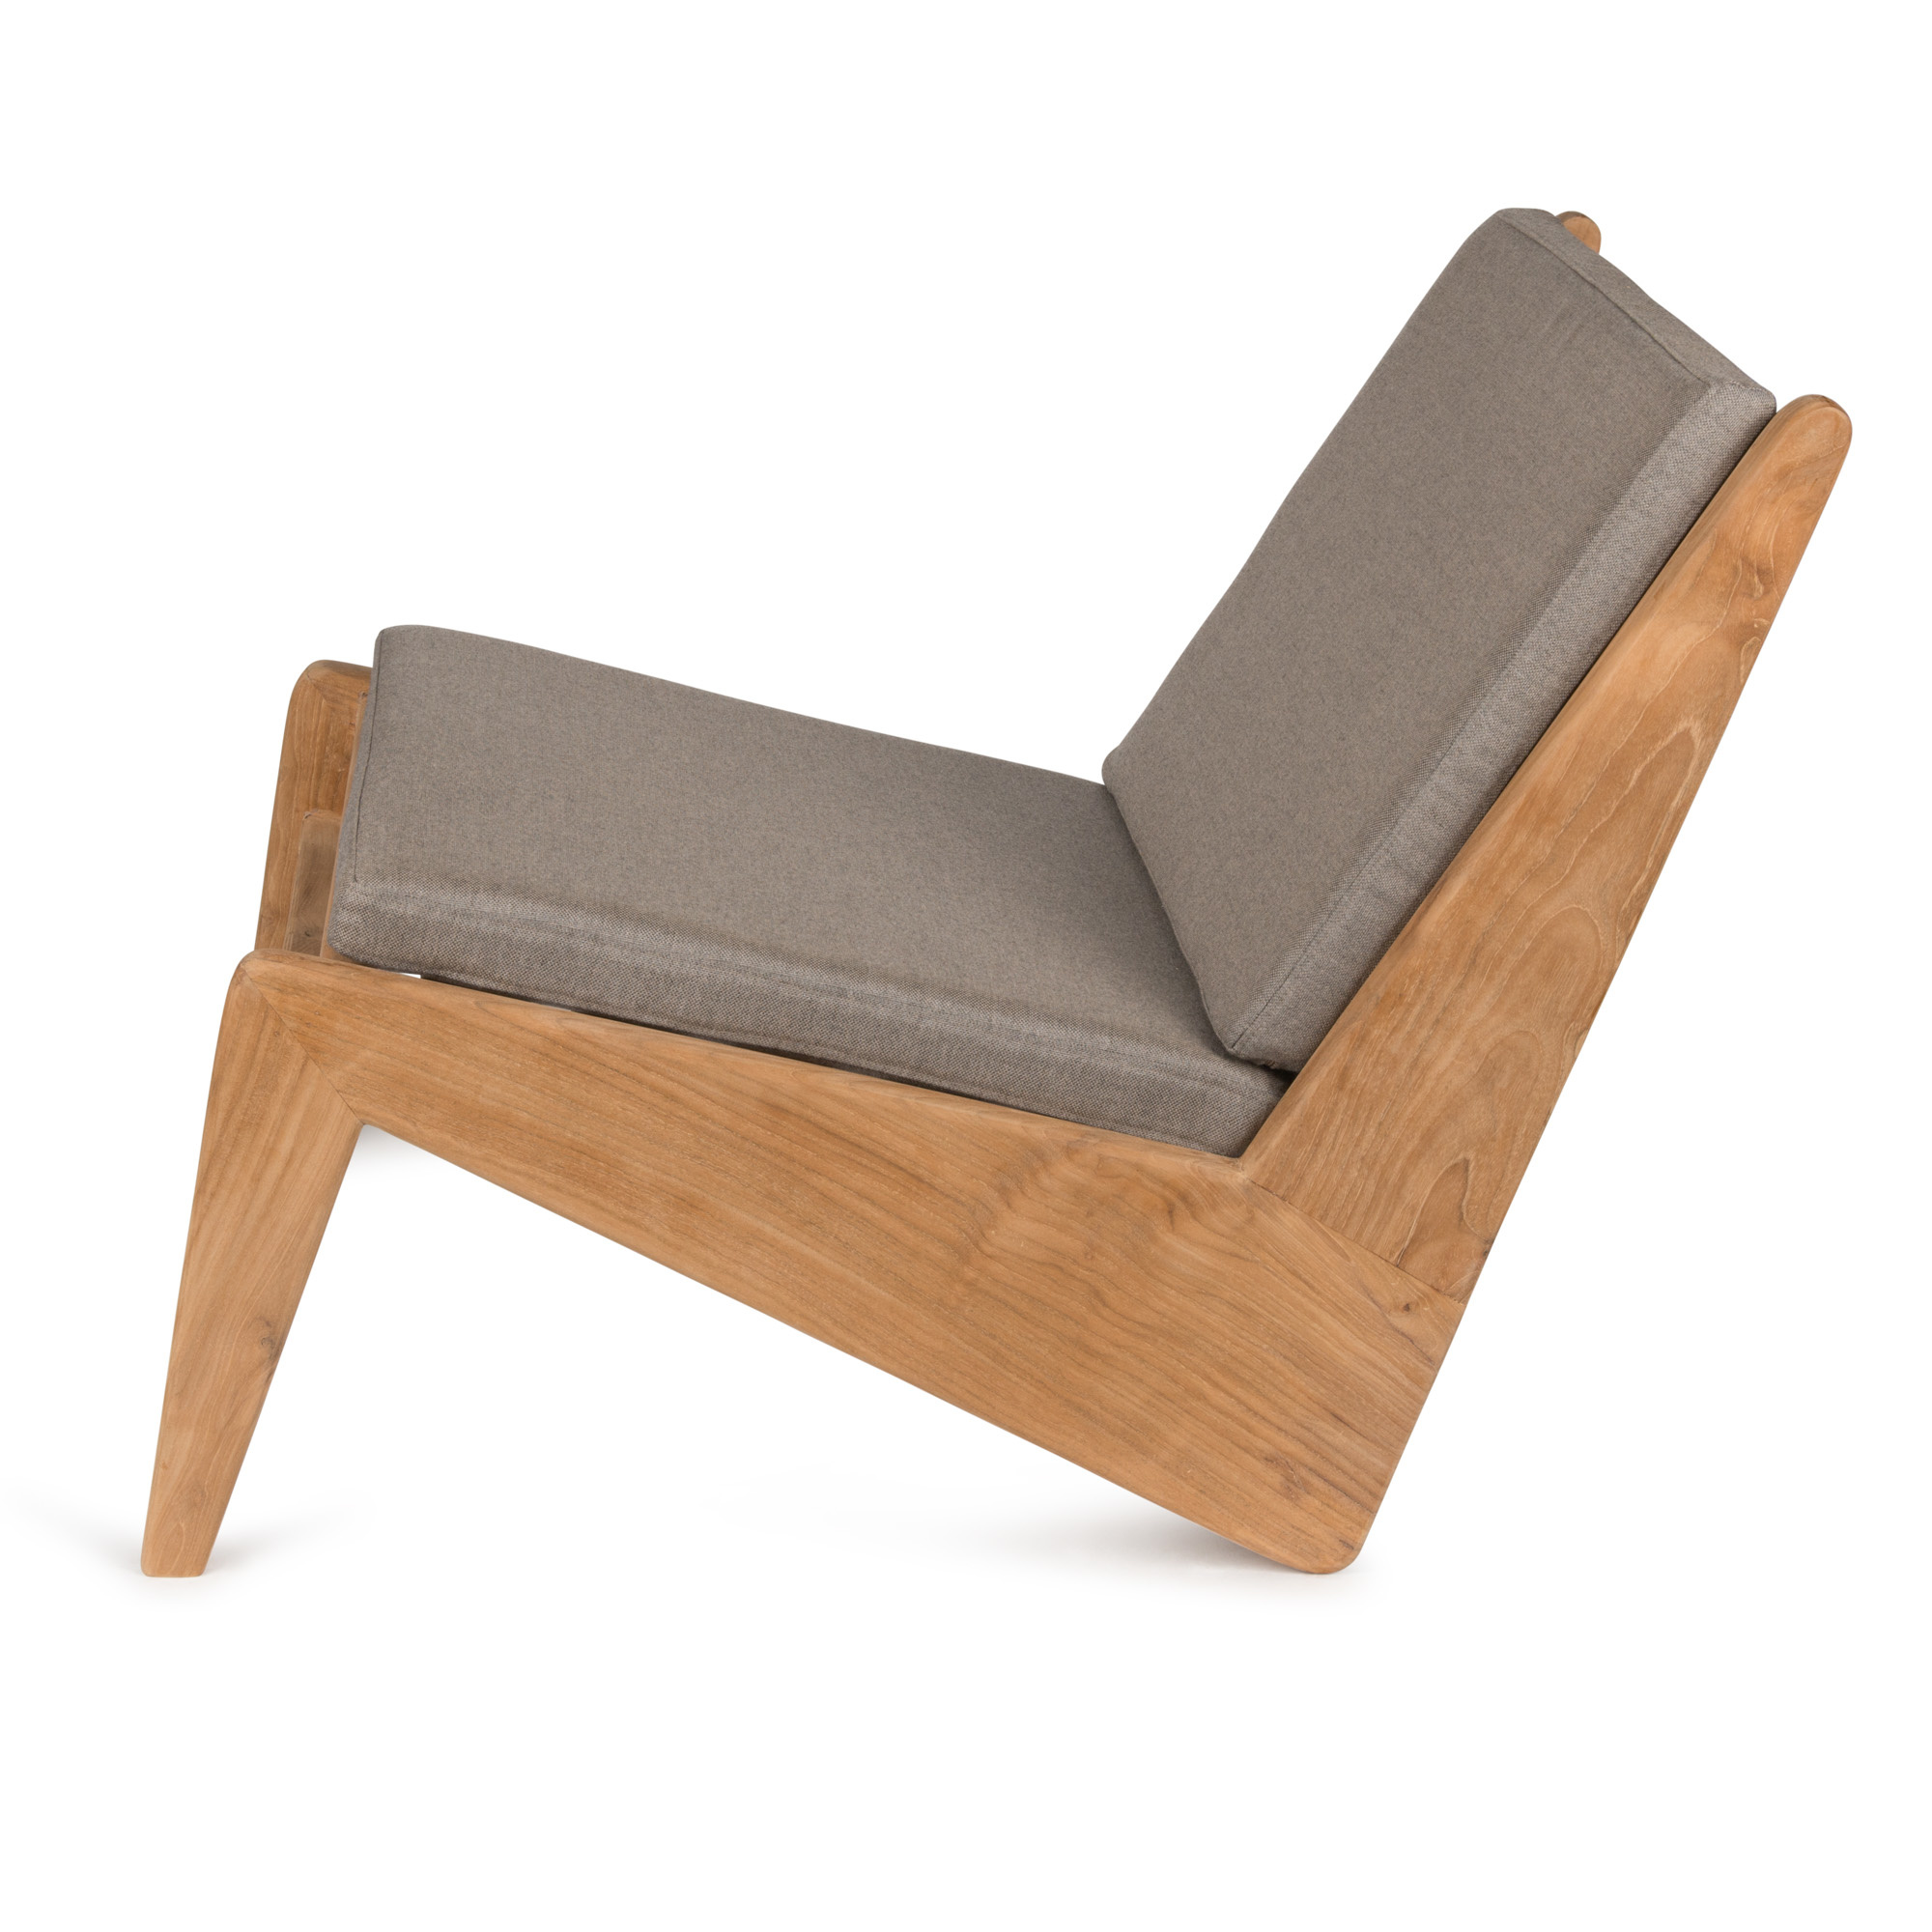 Kangaroo Chair - Teak Outdoor with Cushion-2